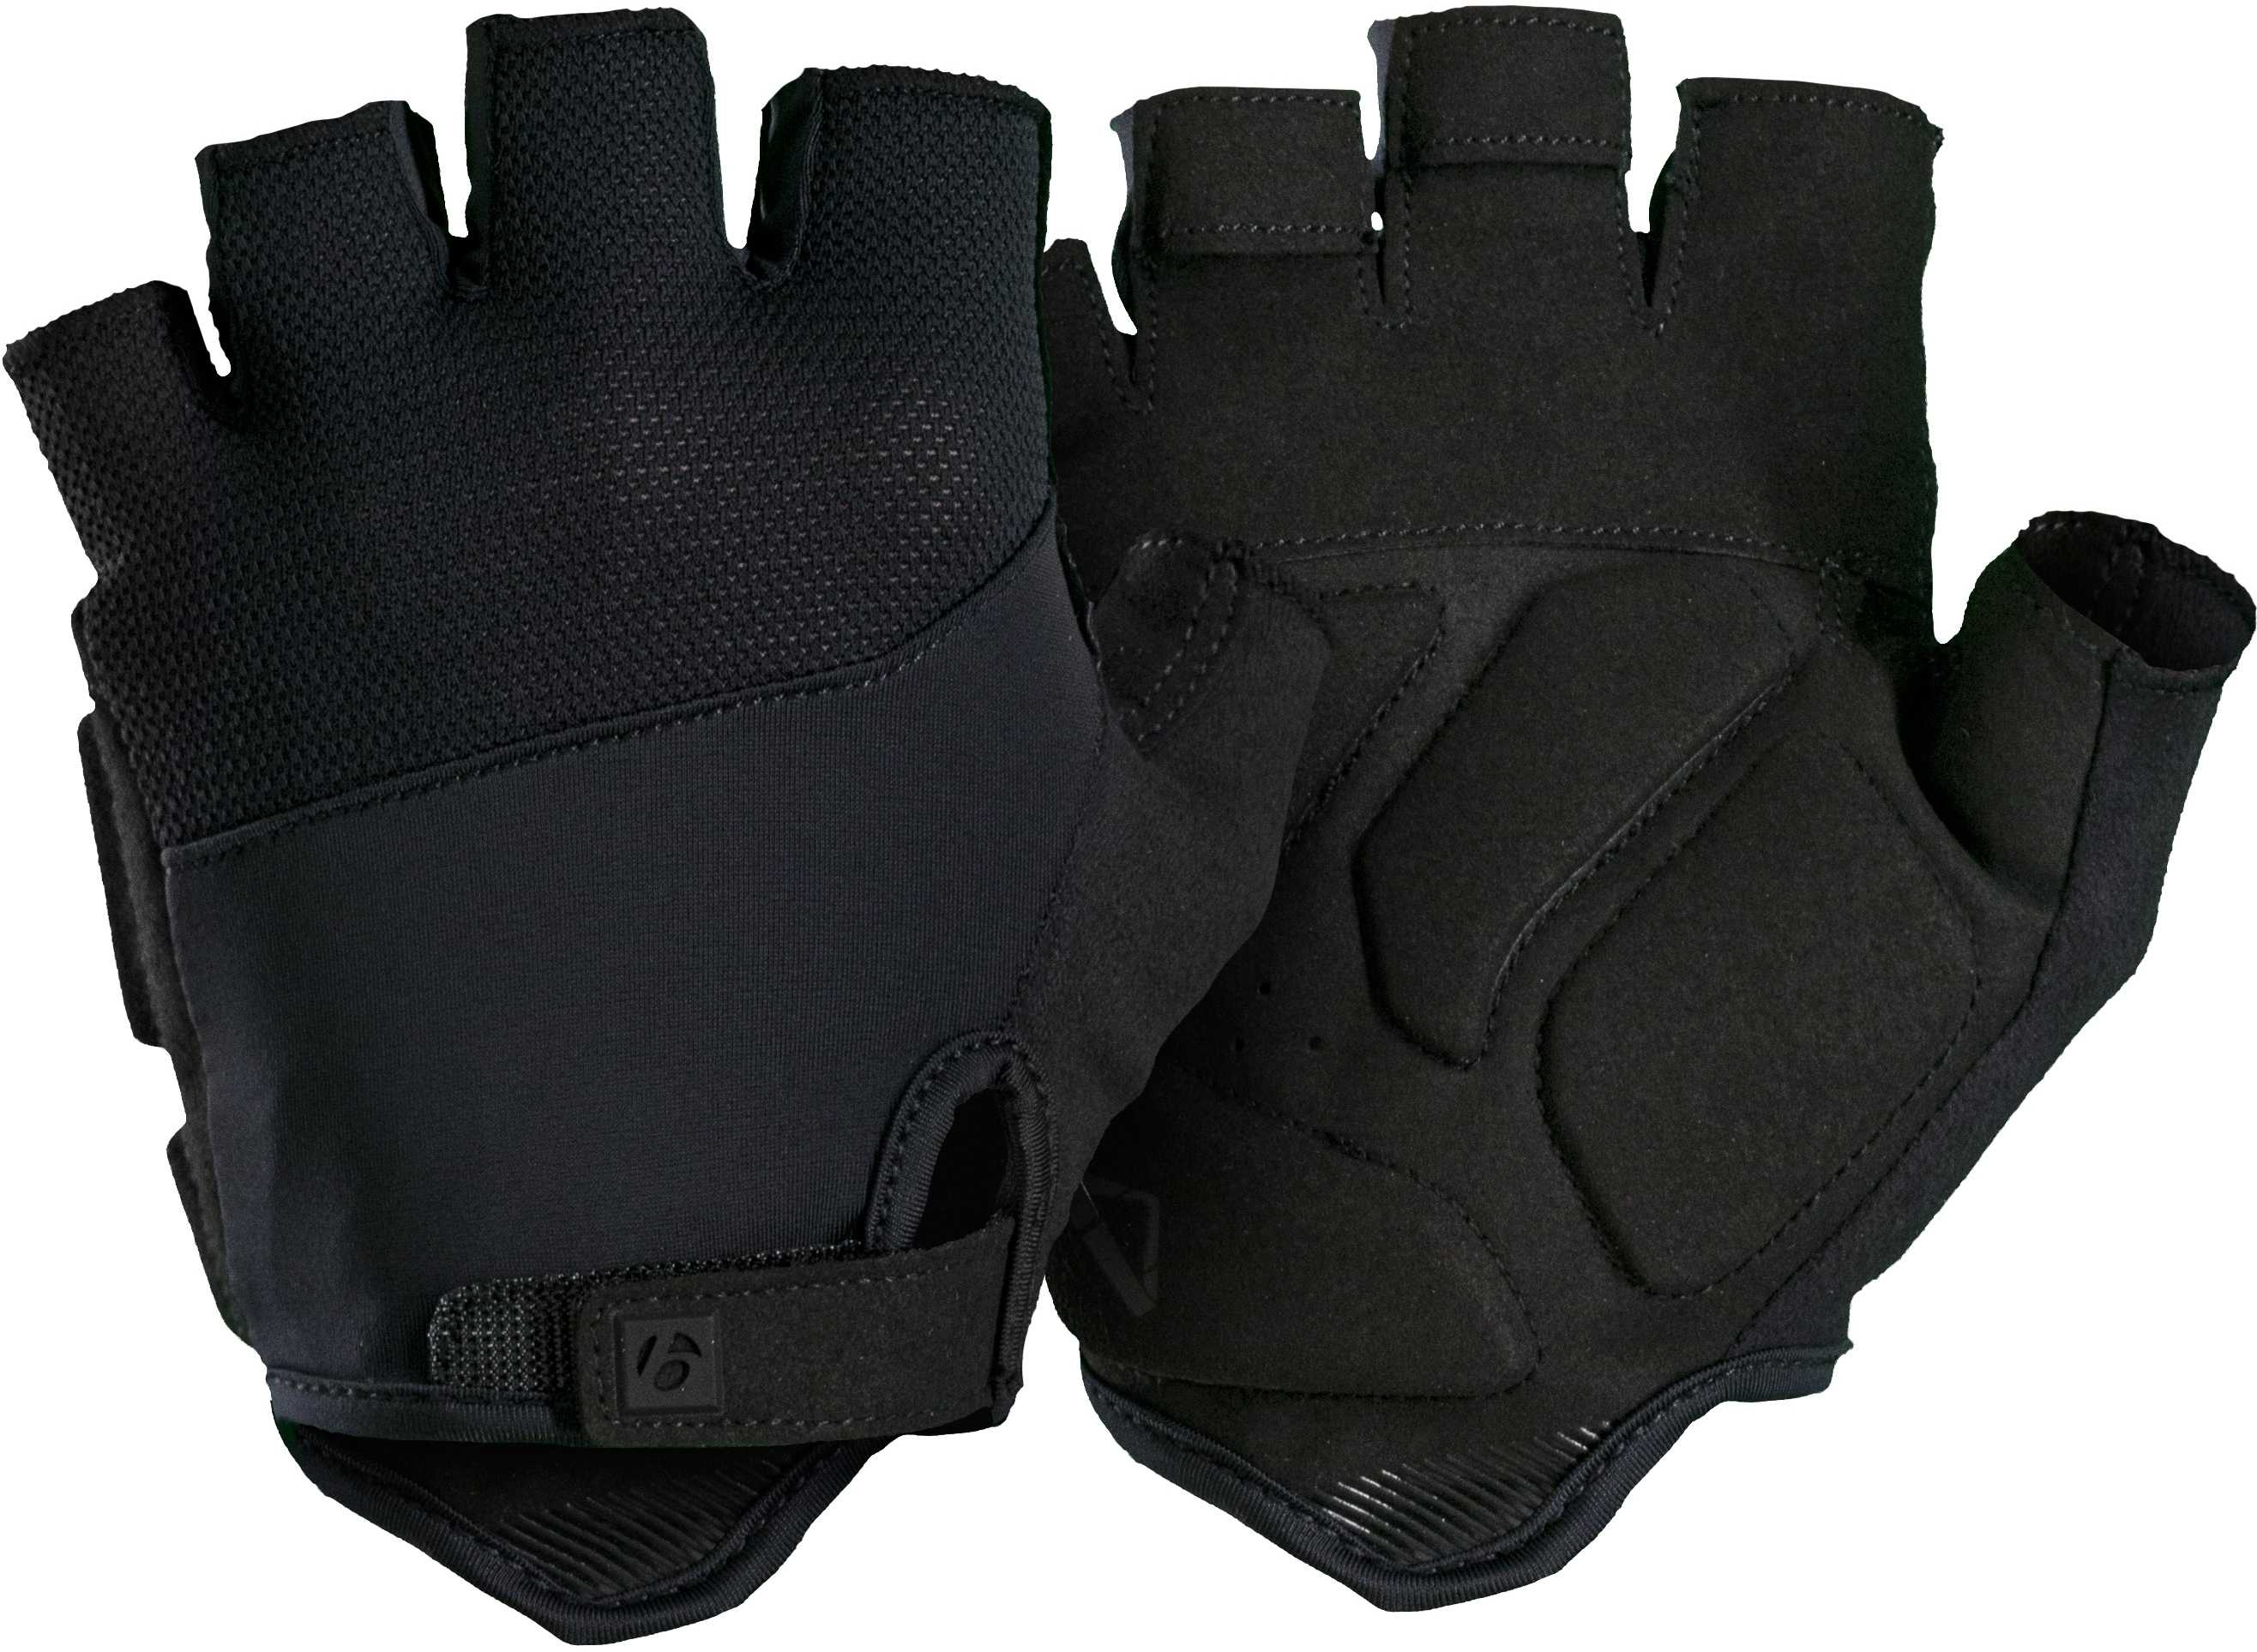 Bontrager Solstice Cycling Glove | Gloves